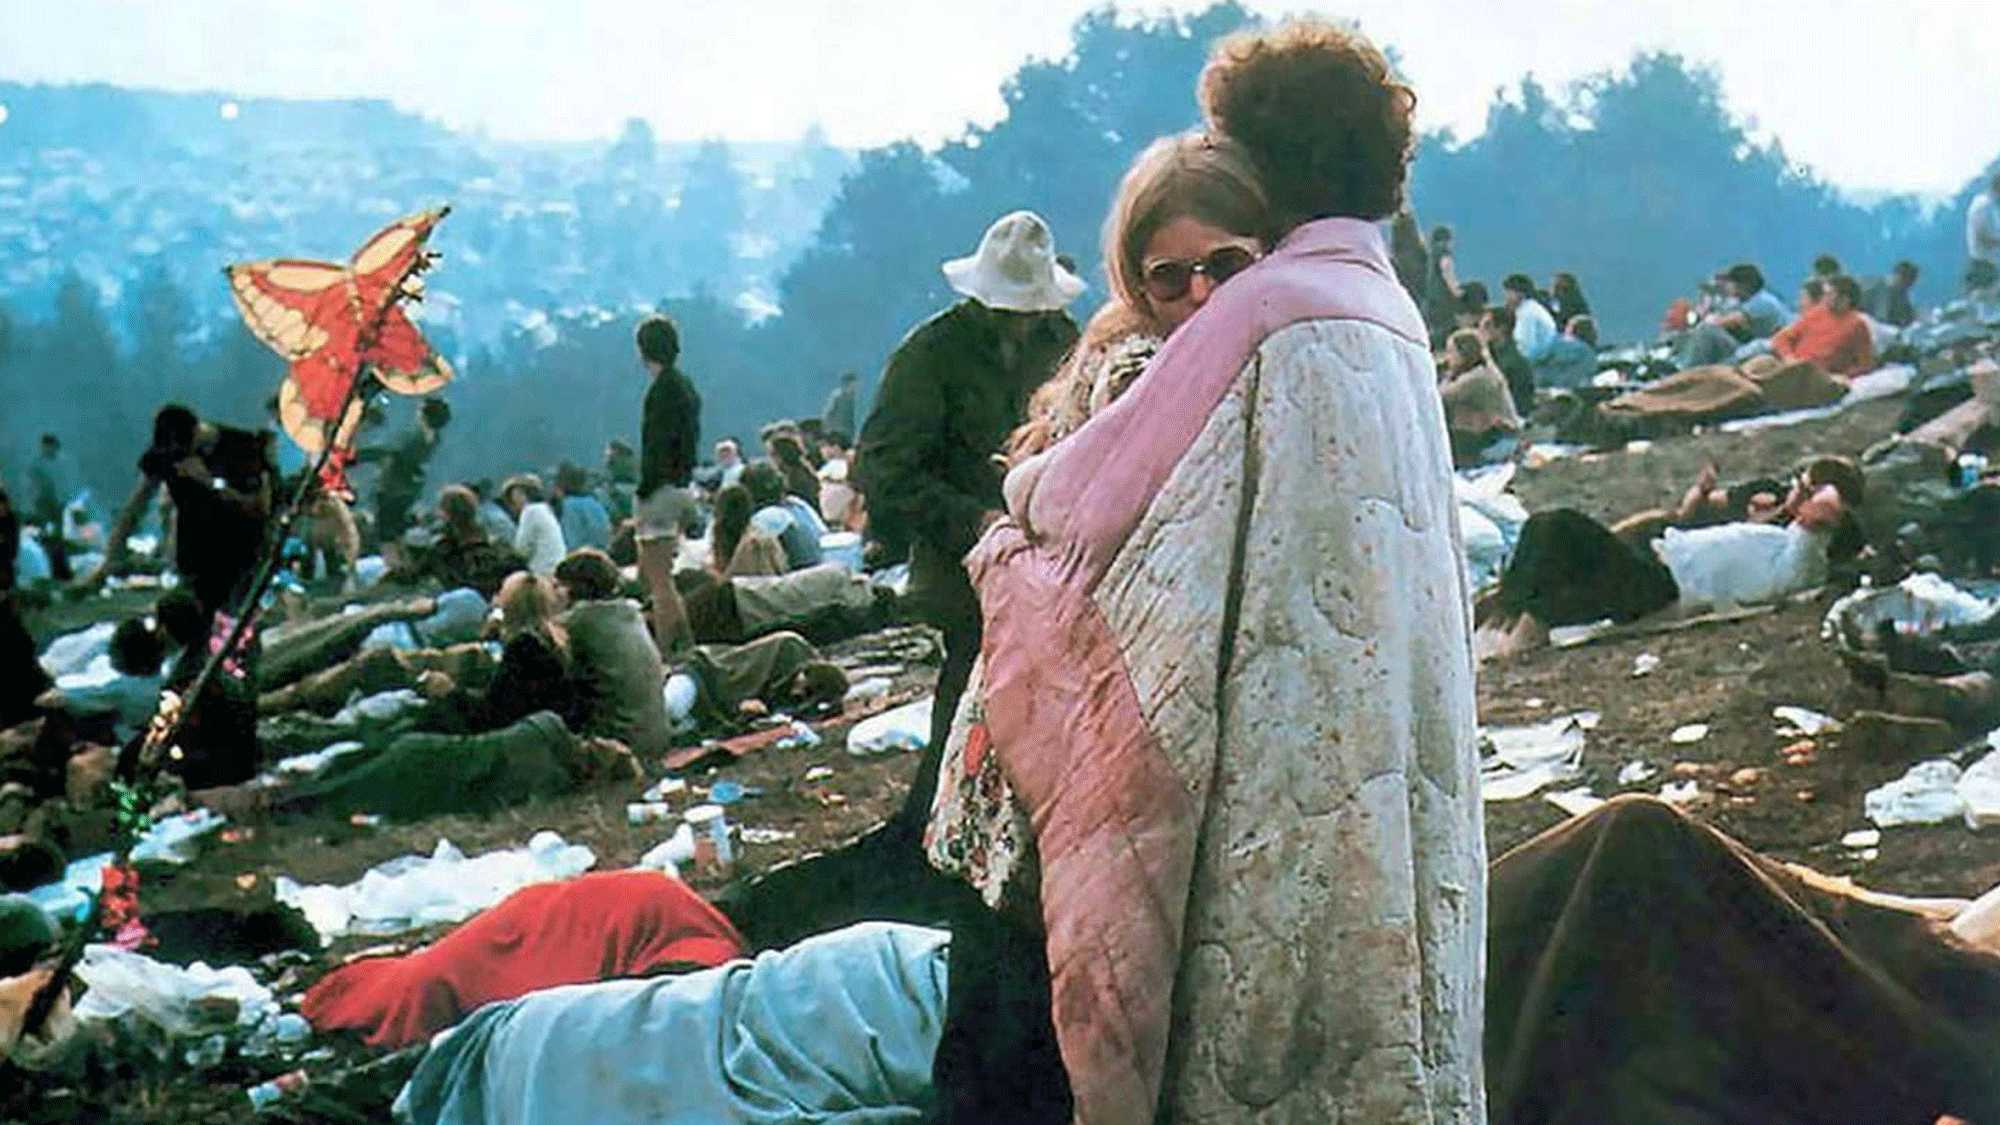 Woodstock: Three Days of Peace and Music (Director's Cut) (image 4)